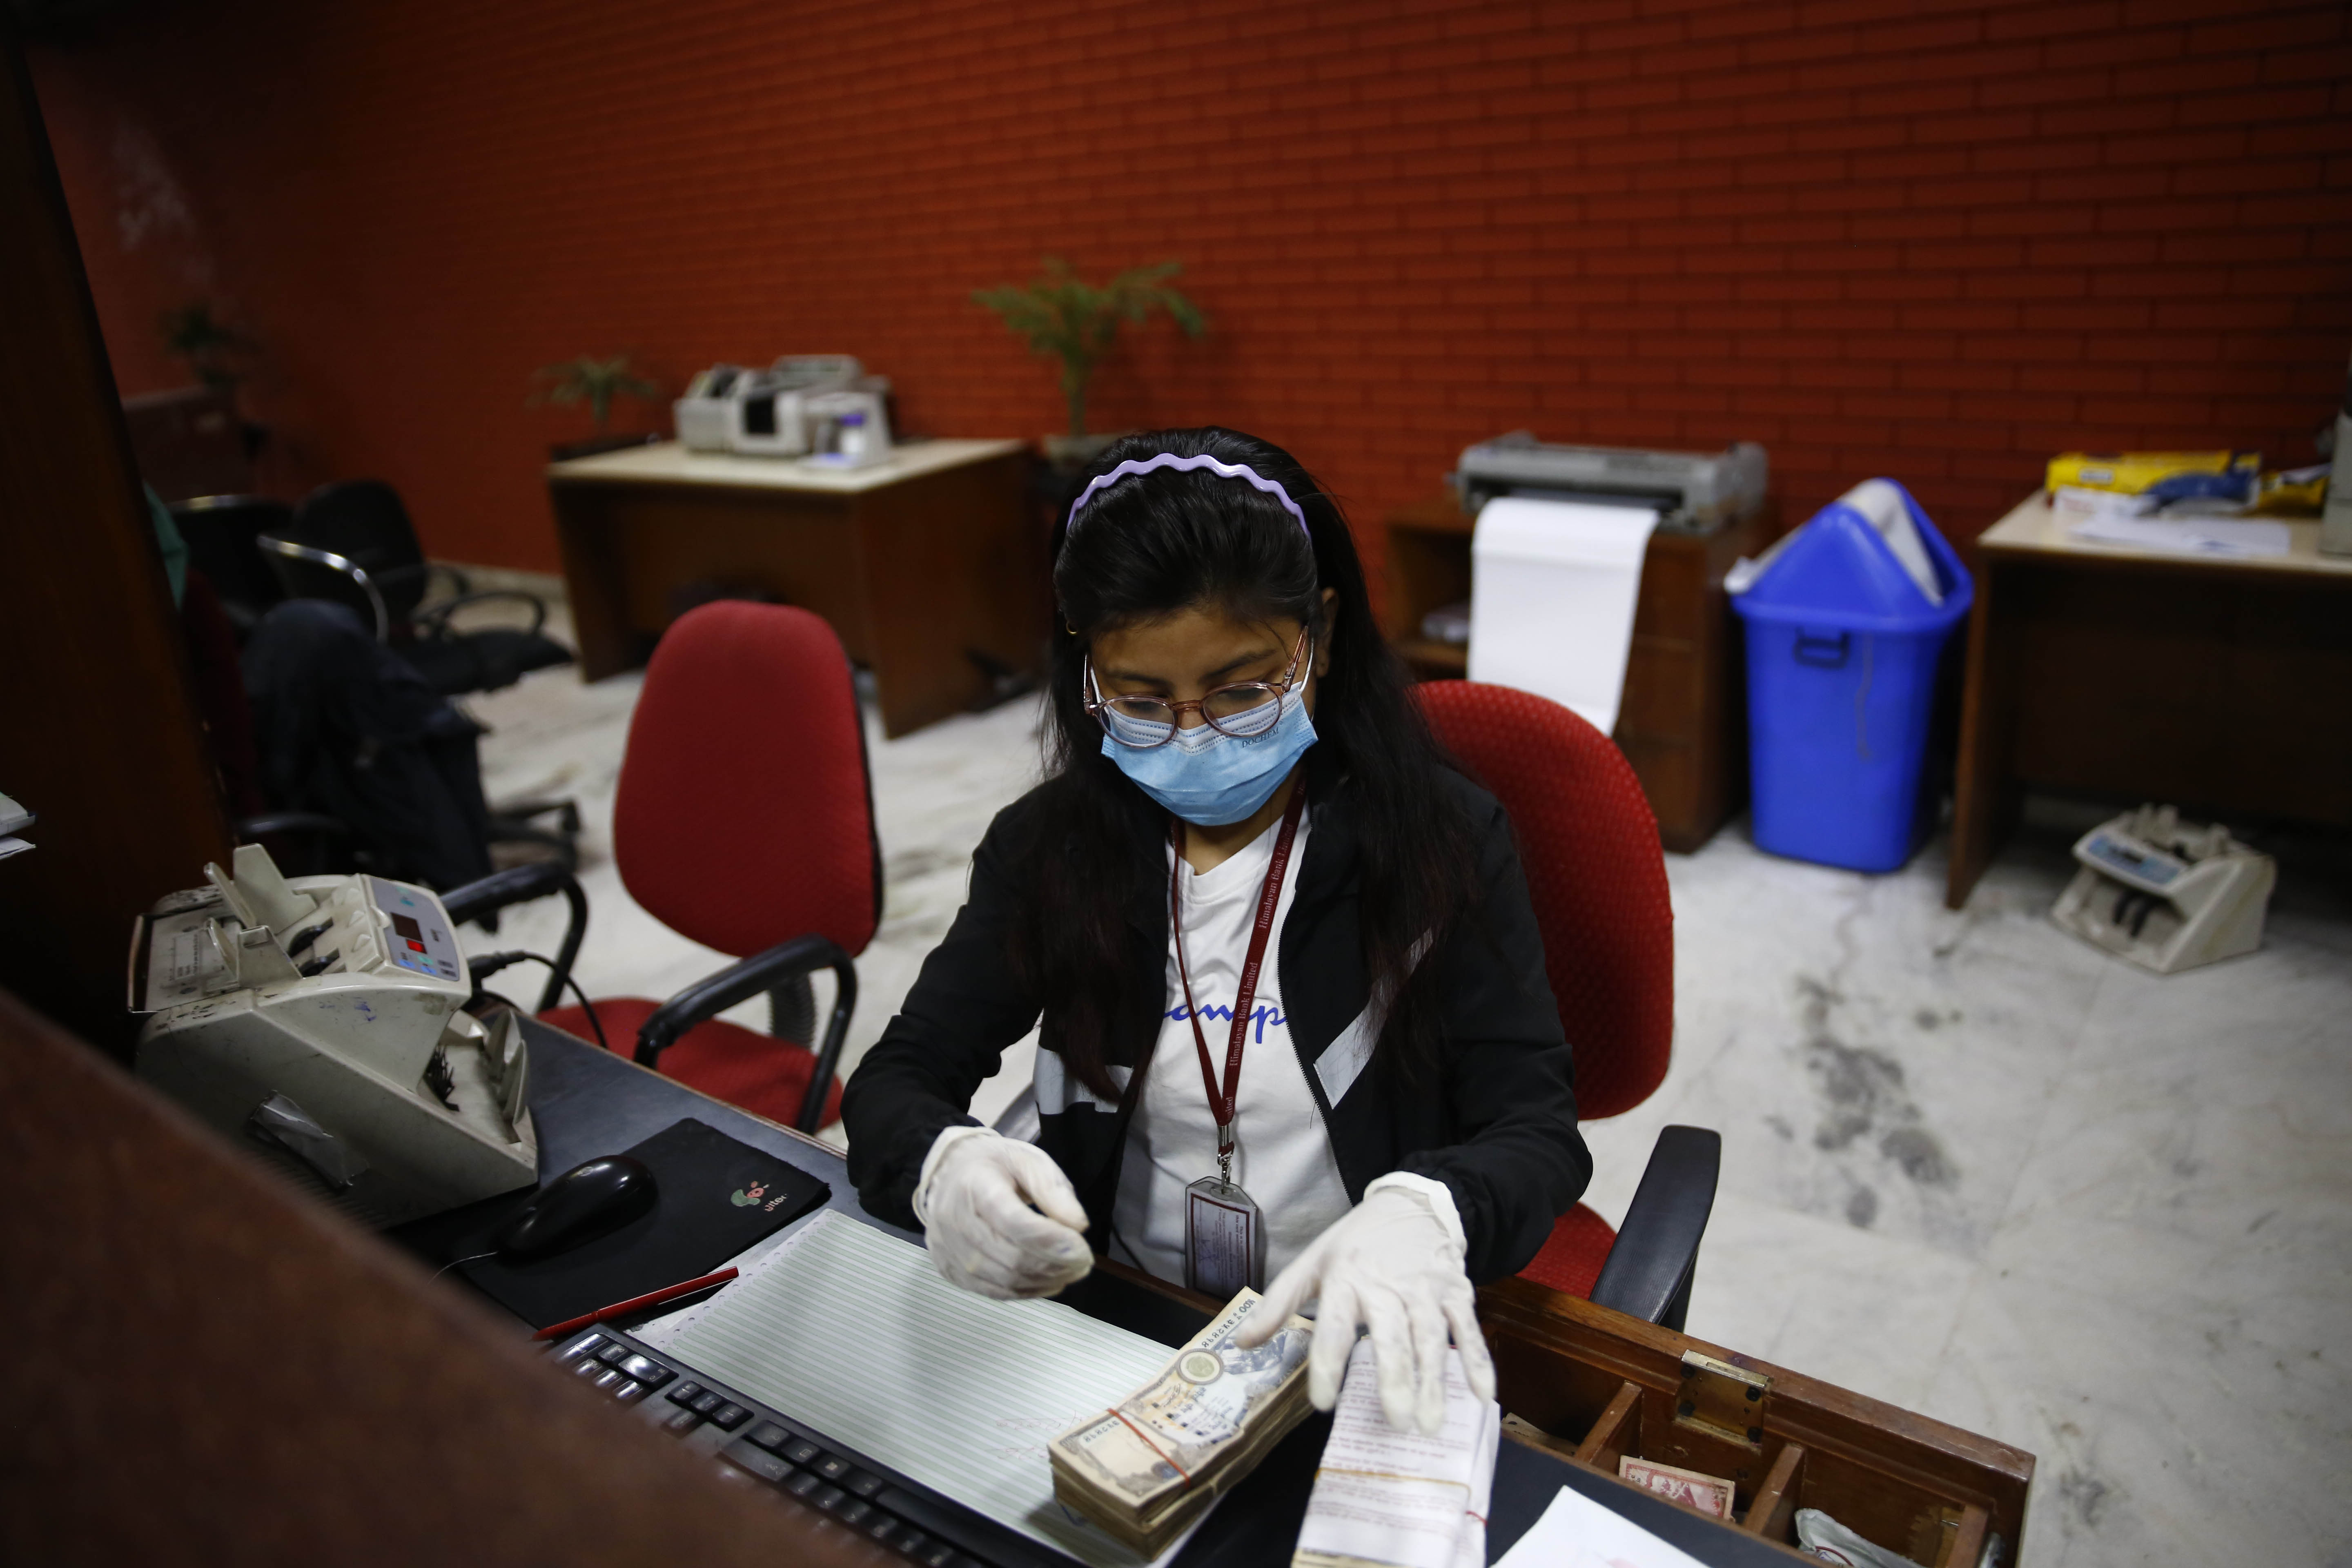 A teller wearing facemask and gloves counts cash at a bank, amid concerns over the spread of coronavirus contagion, on the eighteenth day of the government imposed lockdown, in Kathmandu, on Friday, April 10, 2020. Photo: Skanda Gautam/THT